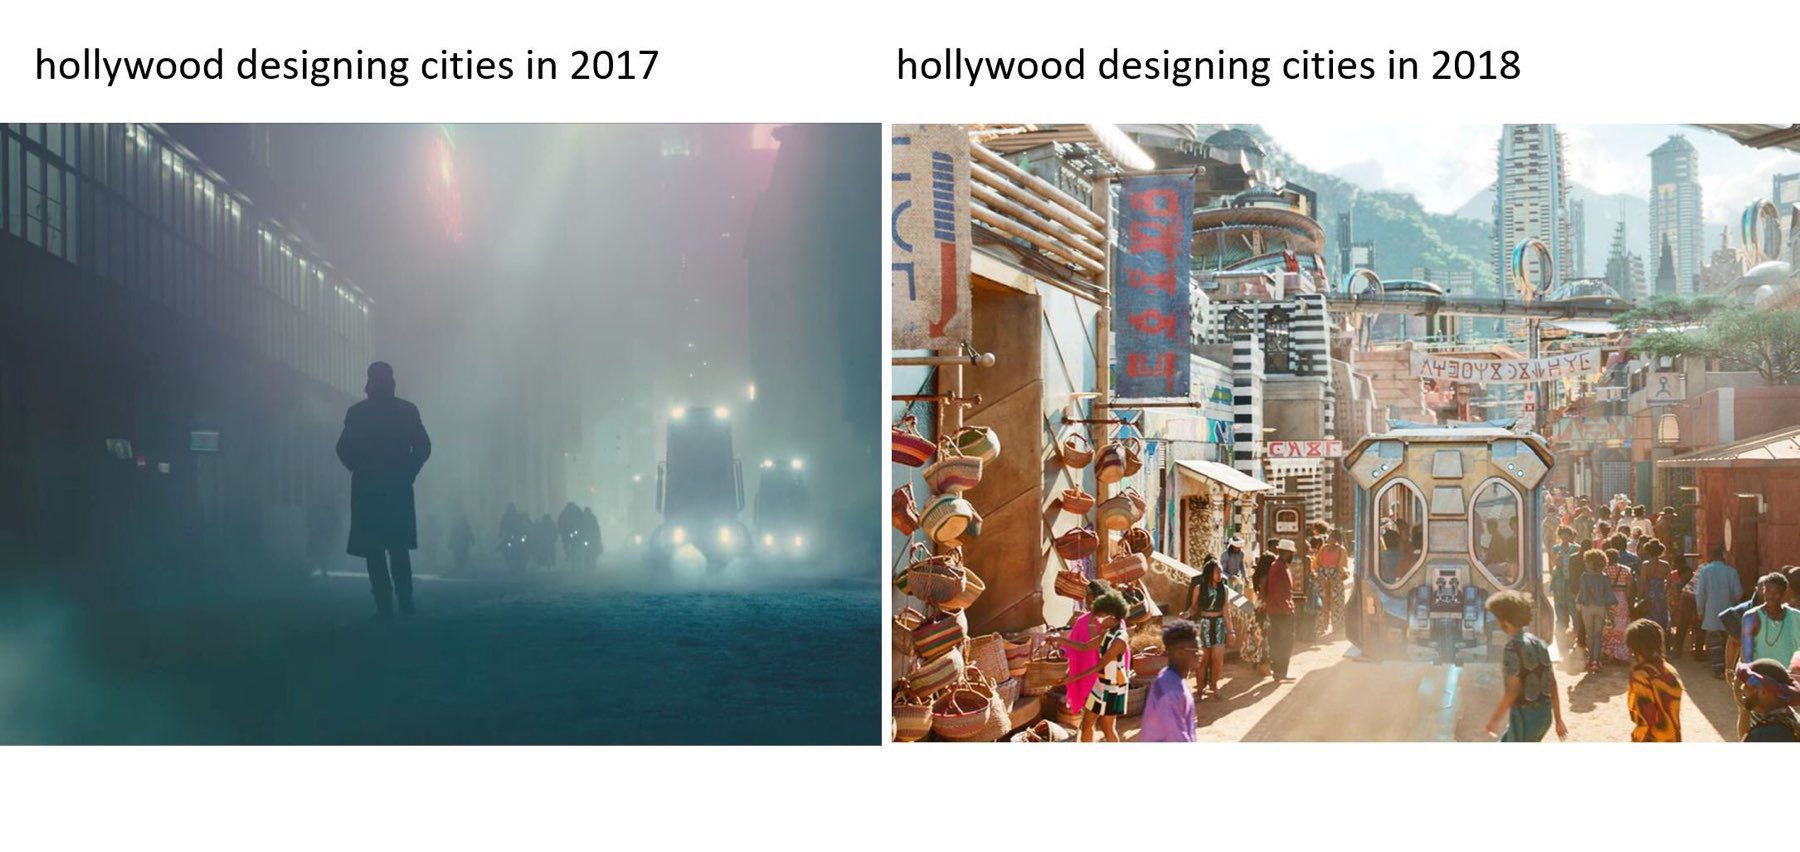 IMAGE FROM TWITTER: how Hollywood designed cities in 2017 and 2018